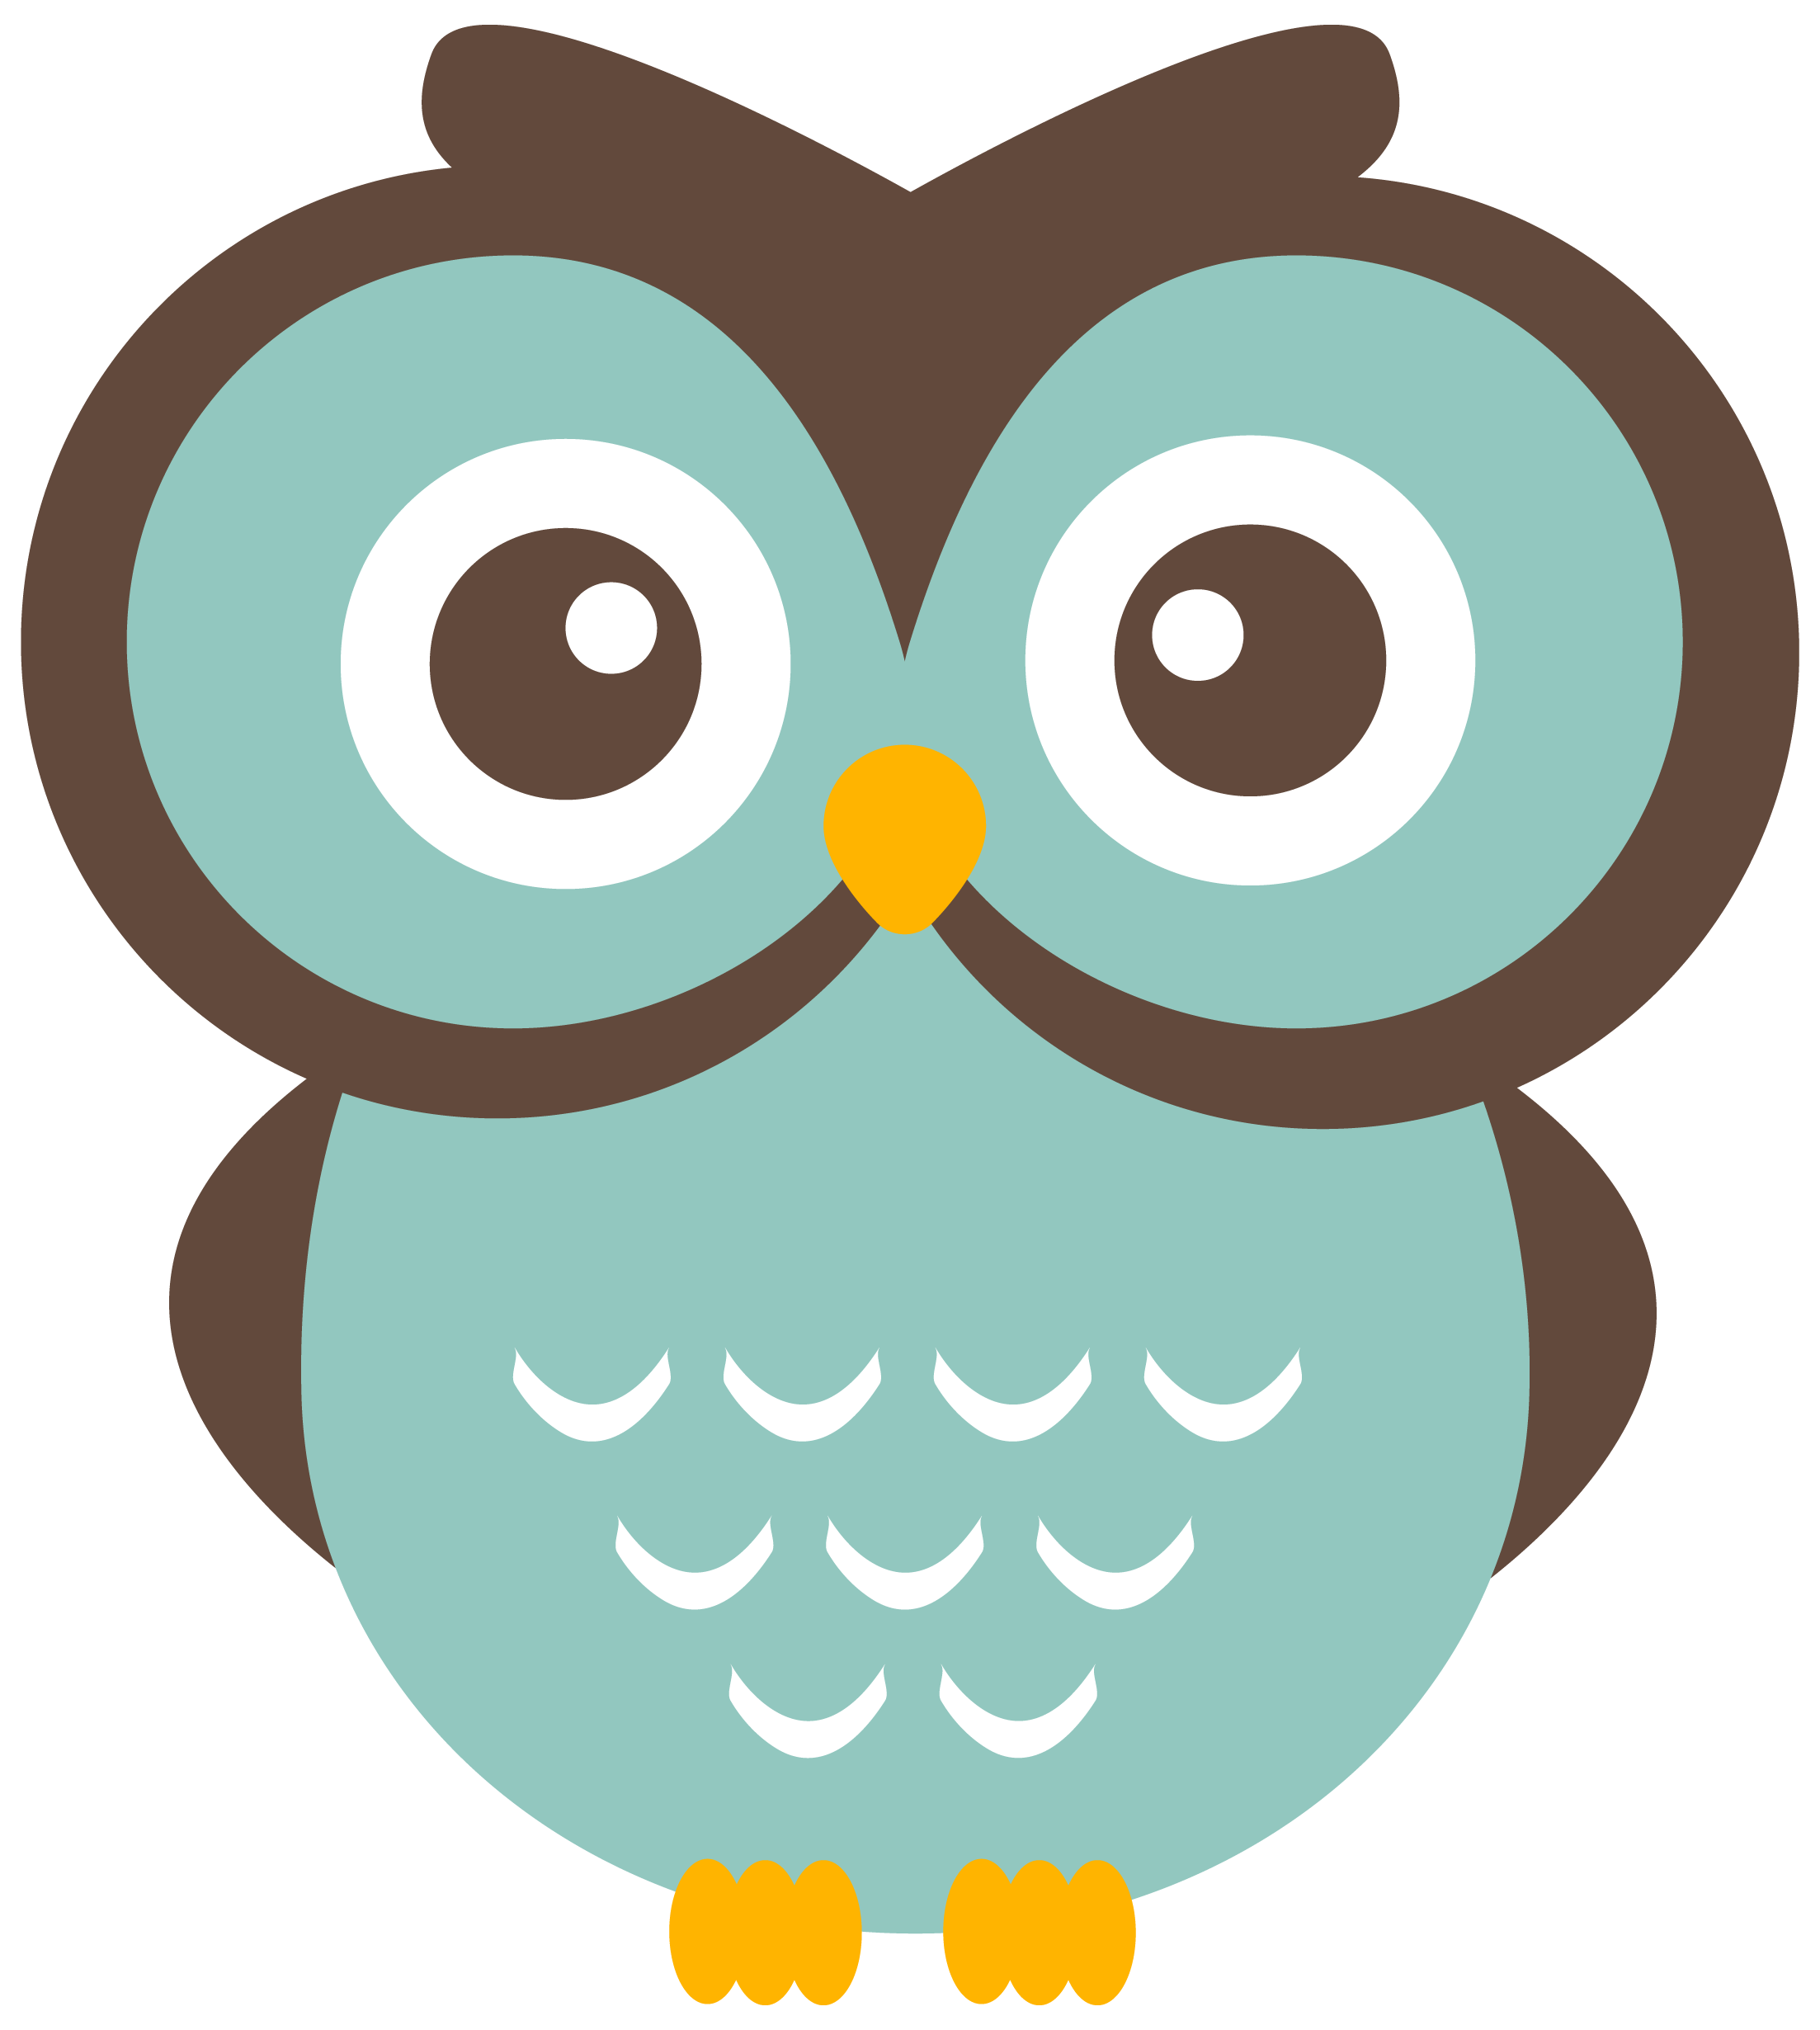 Clipart of owl with apple graphic royalty free Teal Owl Clipart (free download to use) | Graphics: Flat, Halftone ... graphic royalty free